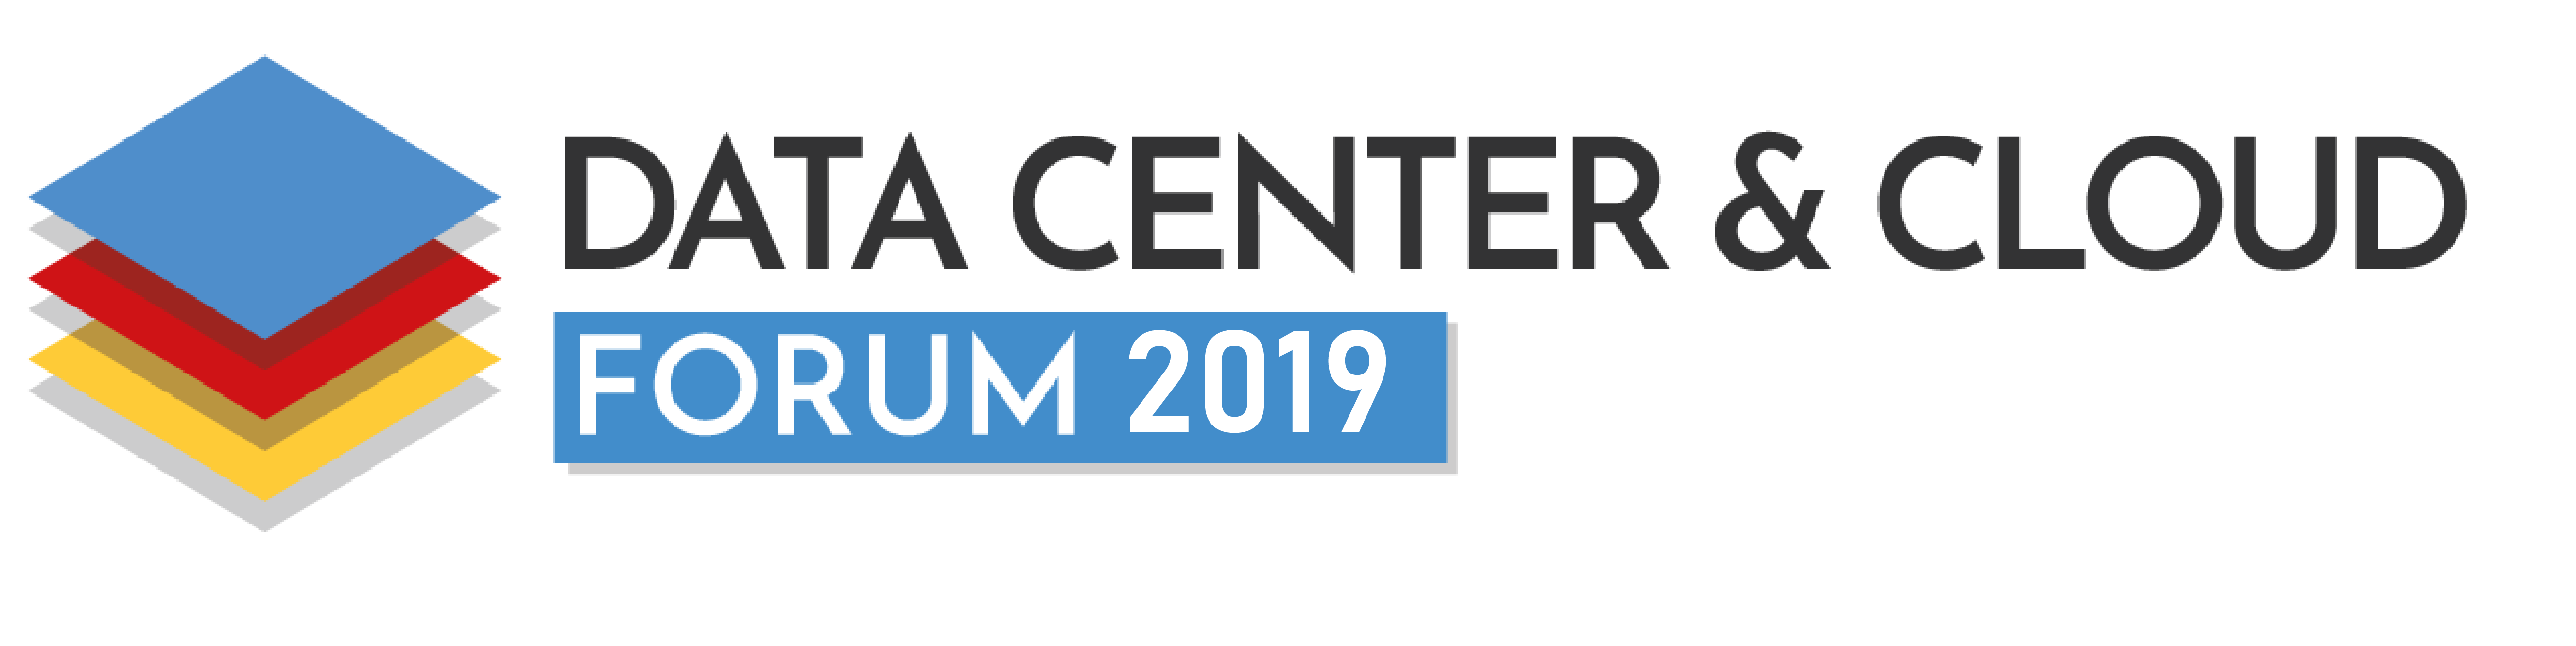 Datacenter & Cloud Forum